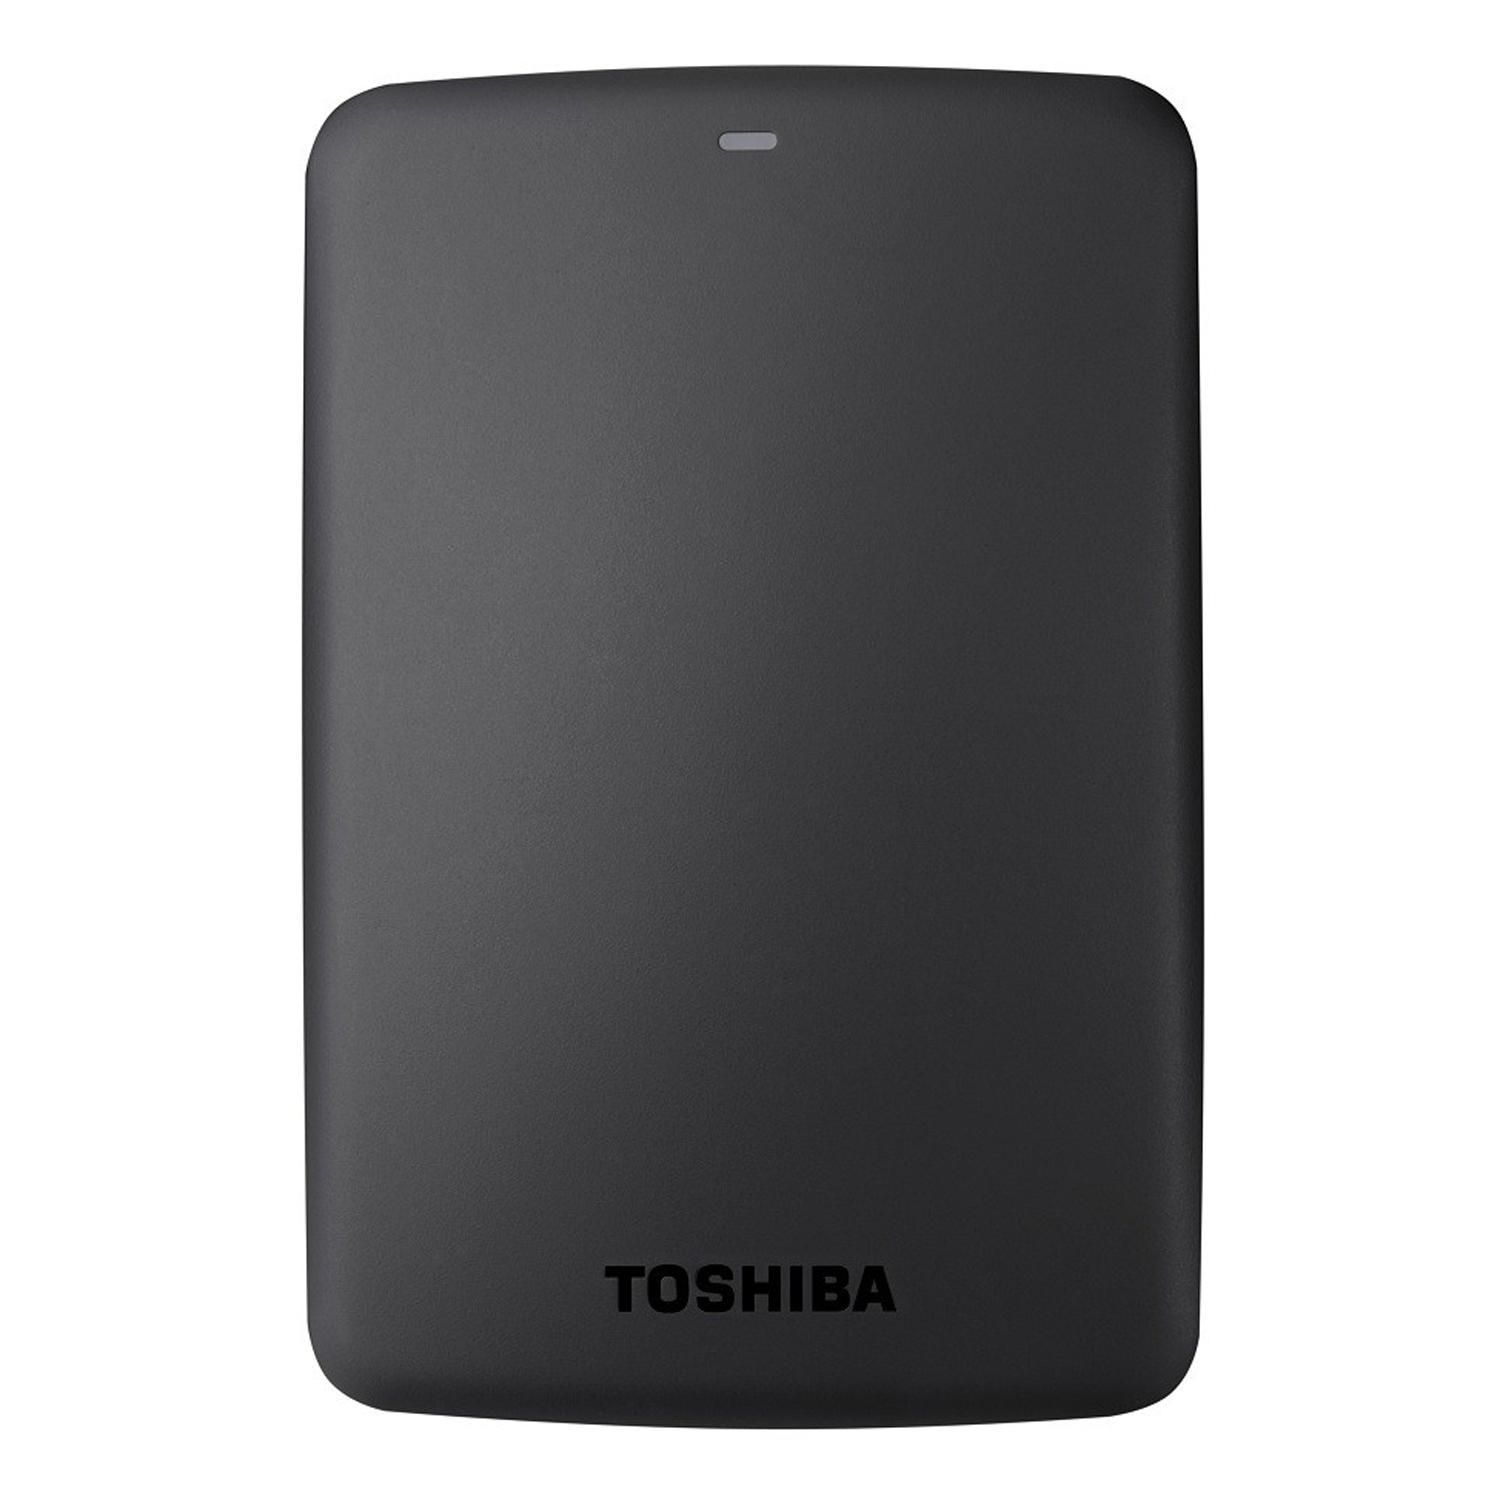 shop online for external hard drives walmart ca toshiba hdtb320xk3ca canvio basics 2tb usb 3 0 portable external hard drive